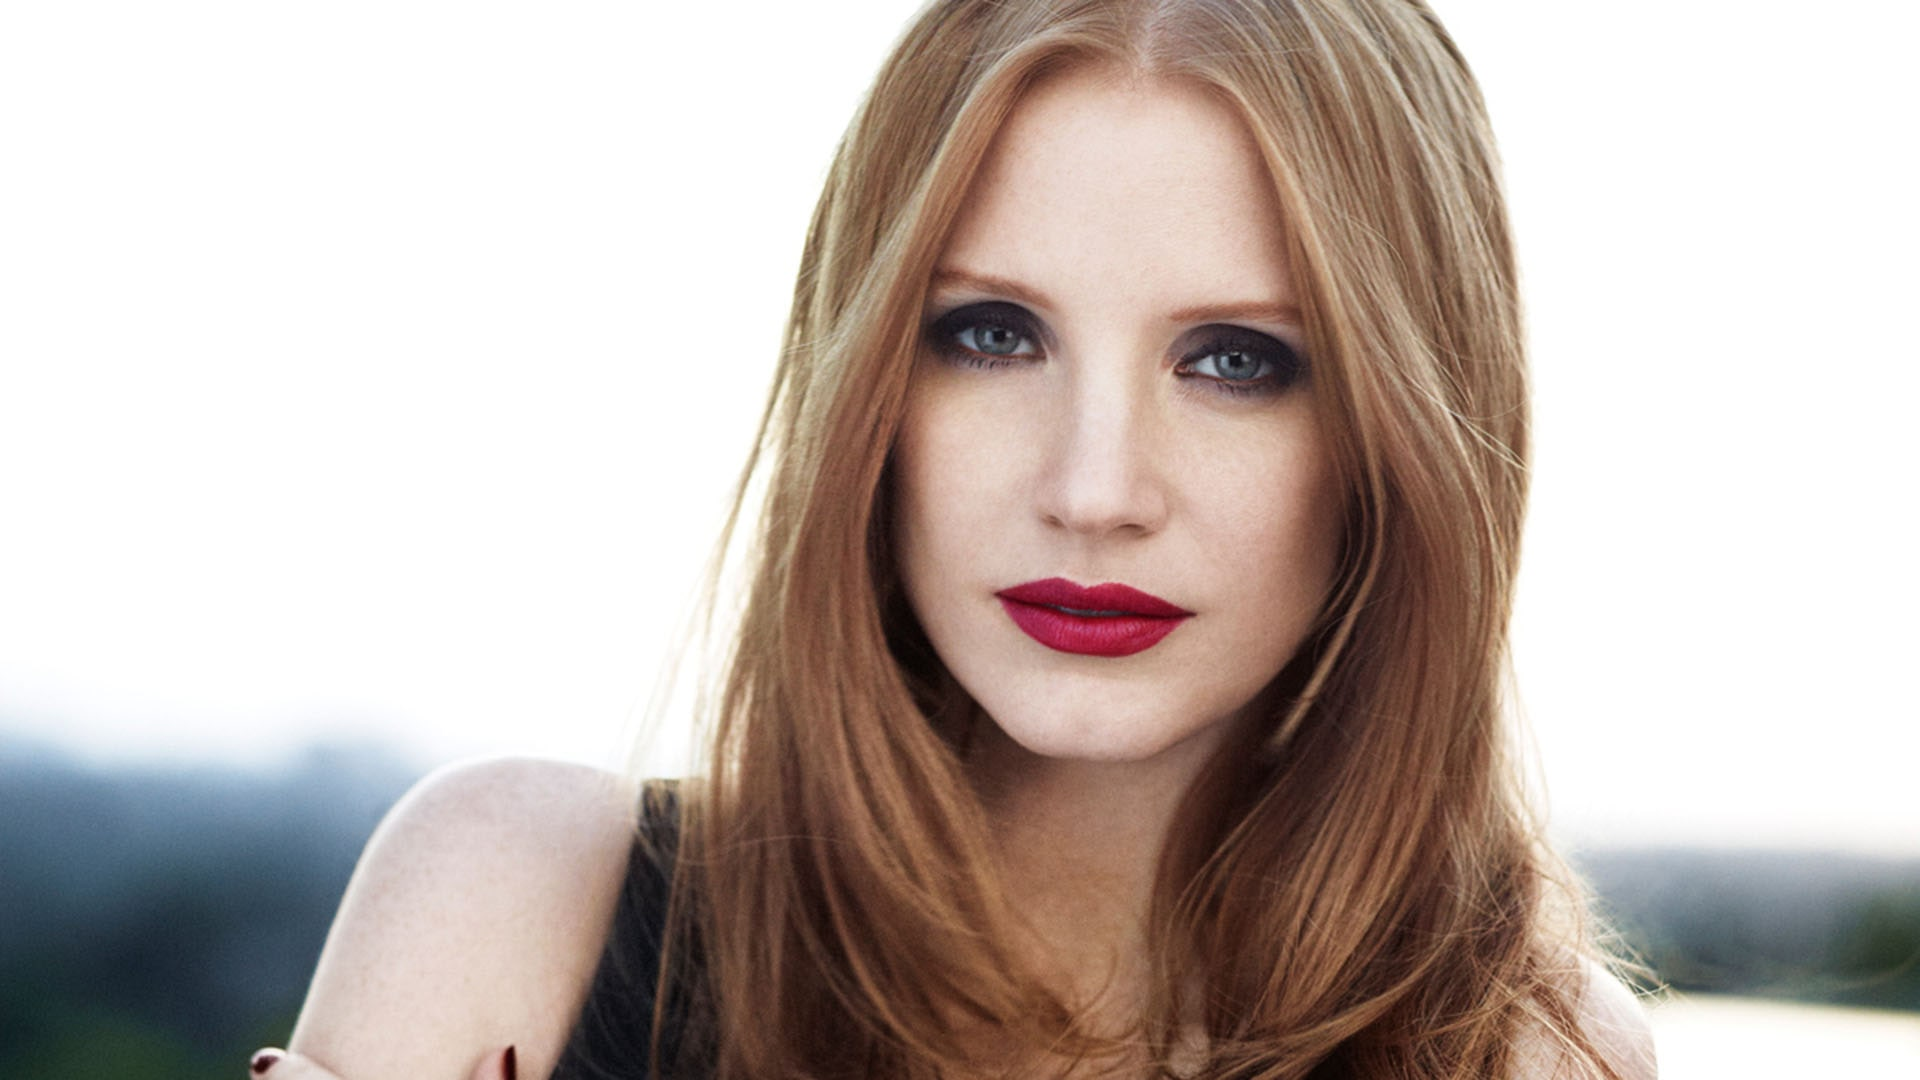 1920x1080 - Jessica Chastain Wallpapers 1